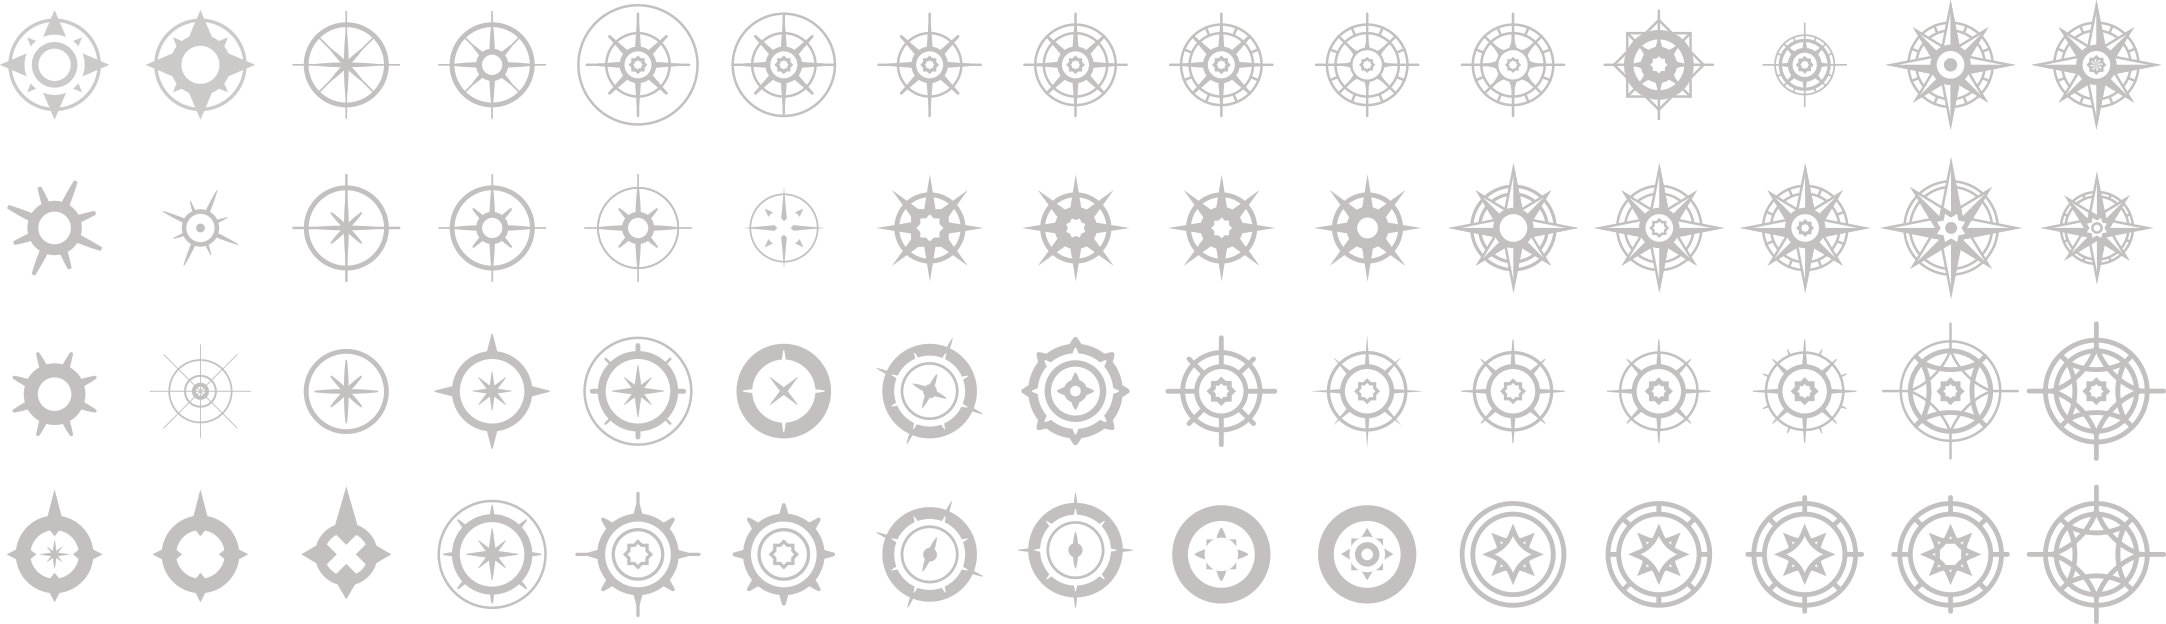 An exploration of compass styles.